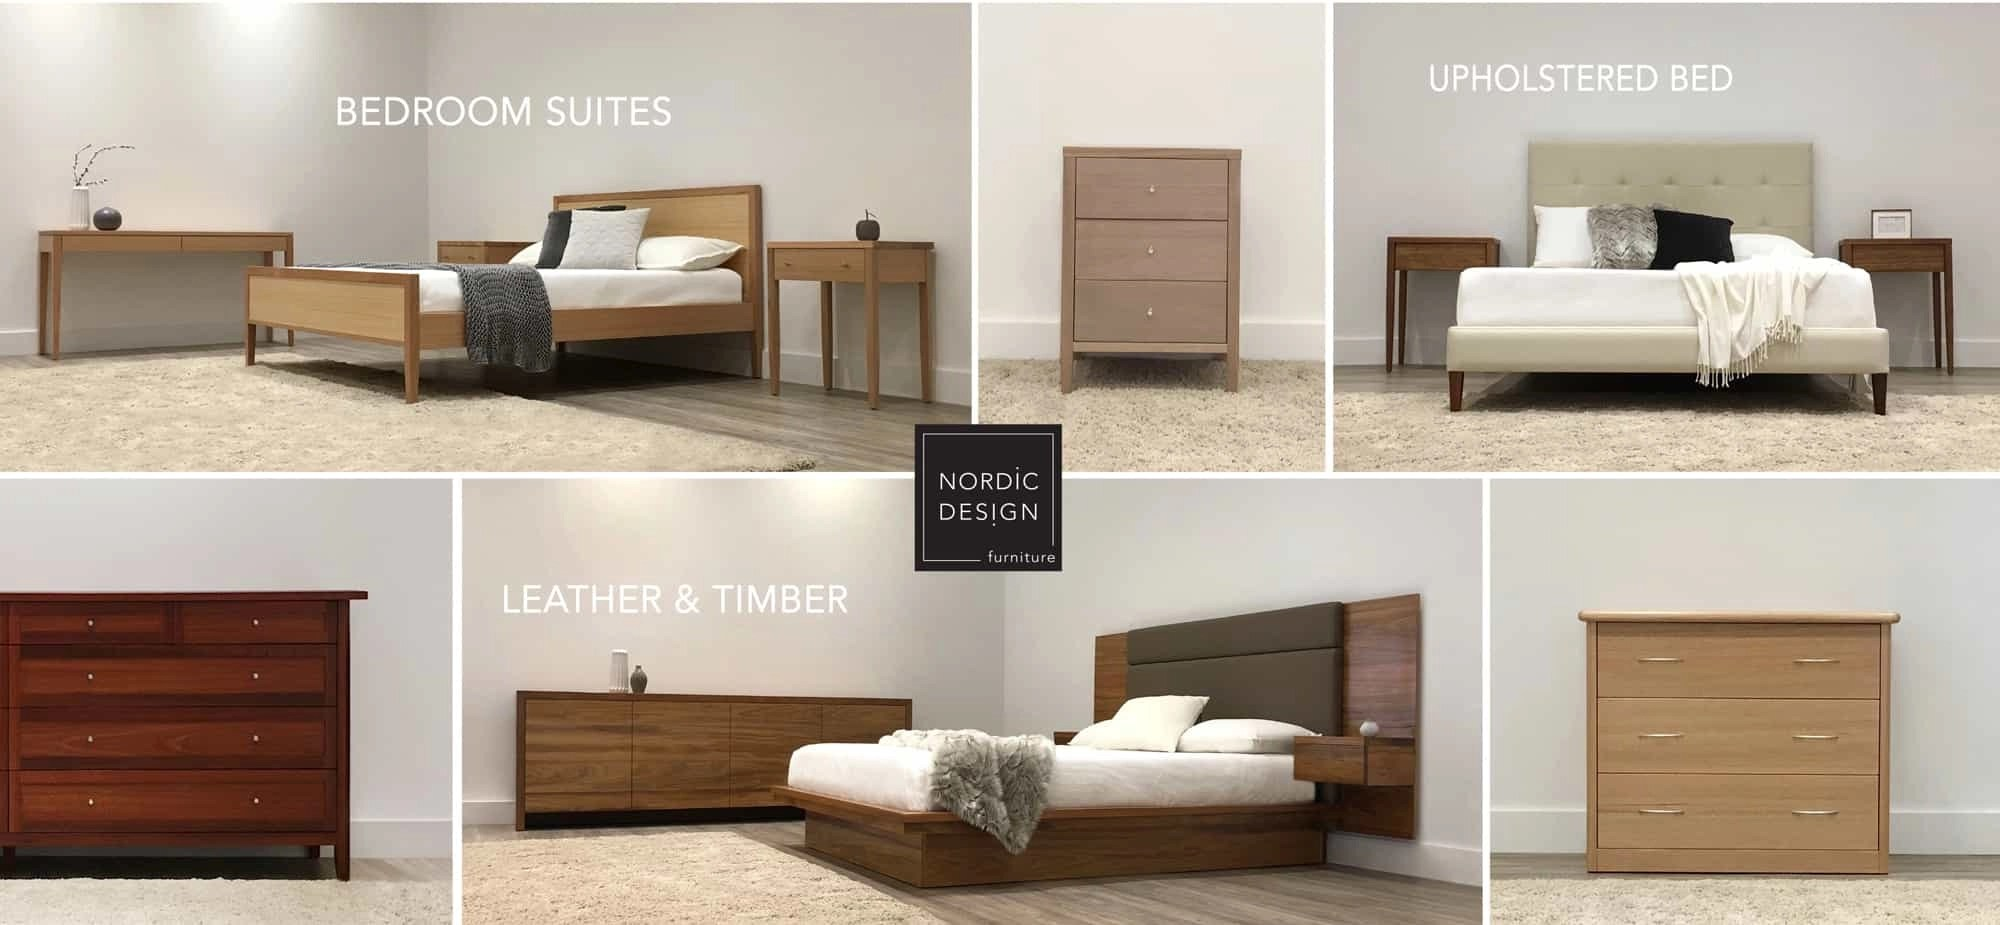 Bedroom Furniture Tips Customise Your Bedroom Furniture Today